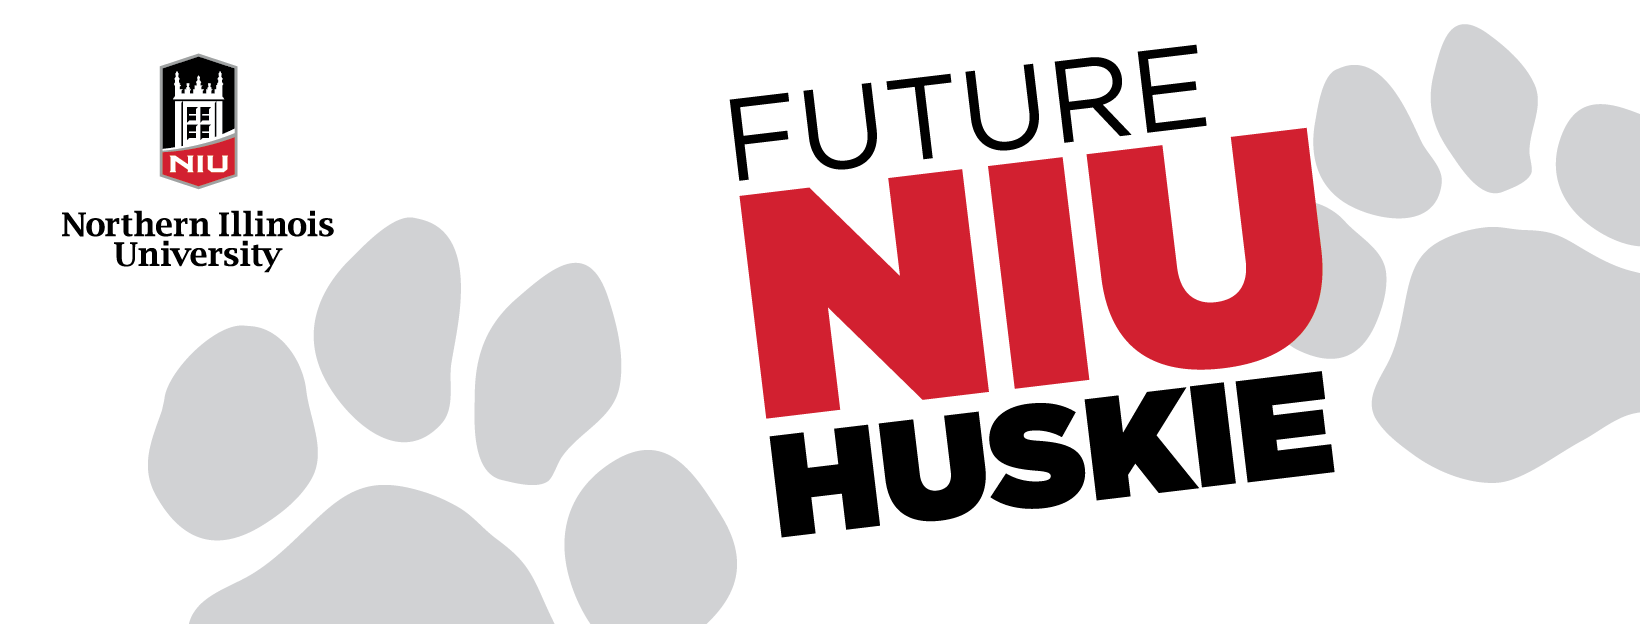 Future Huskie - White for Profile